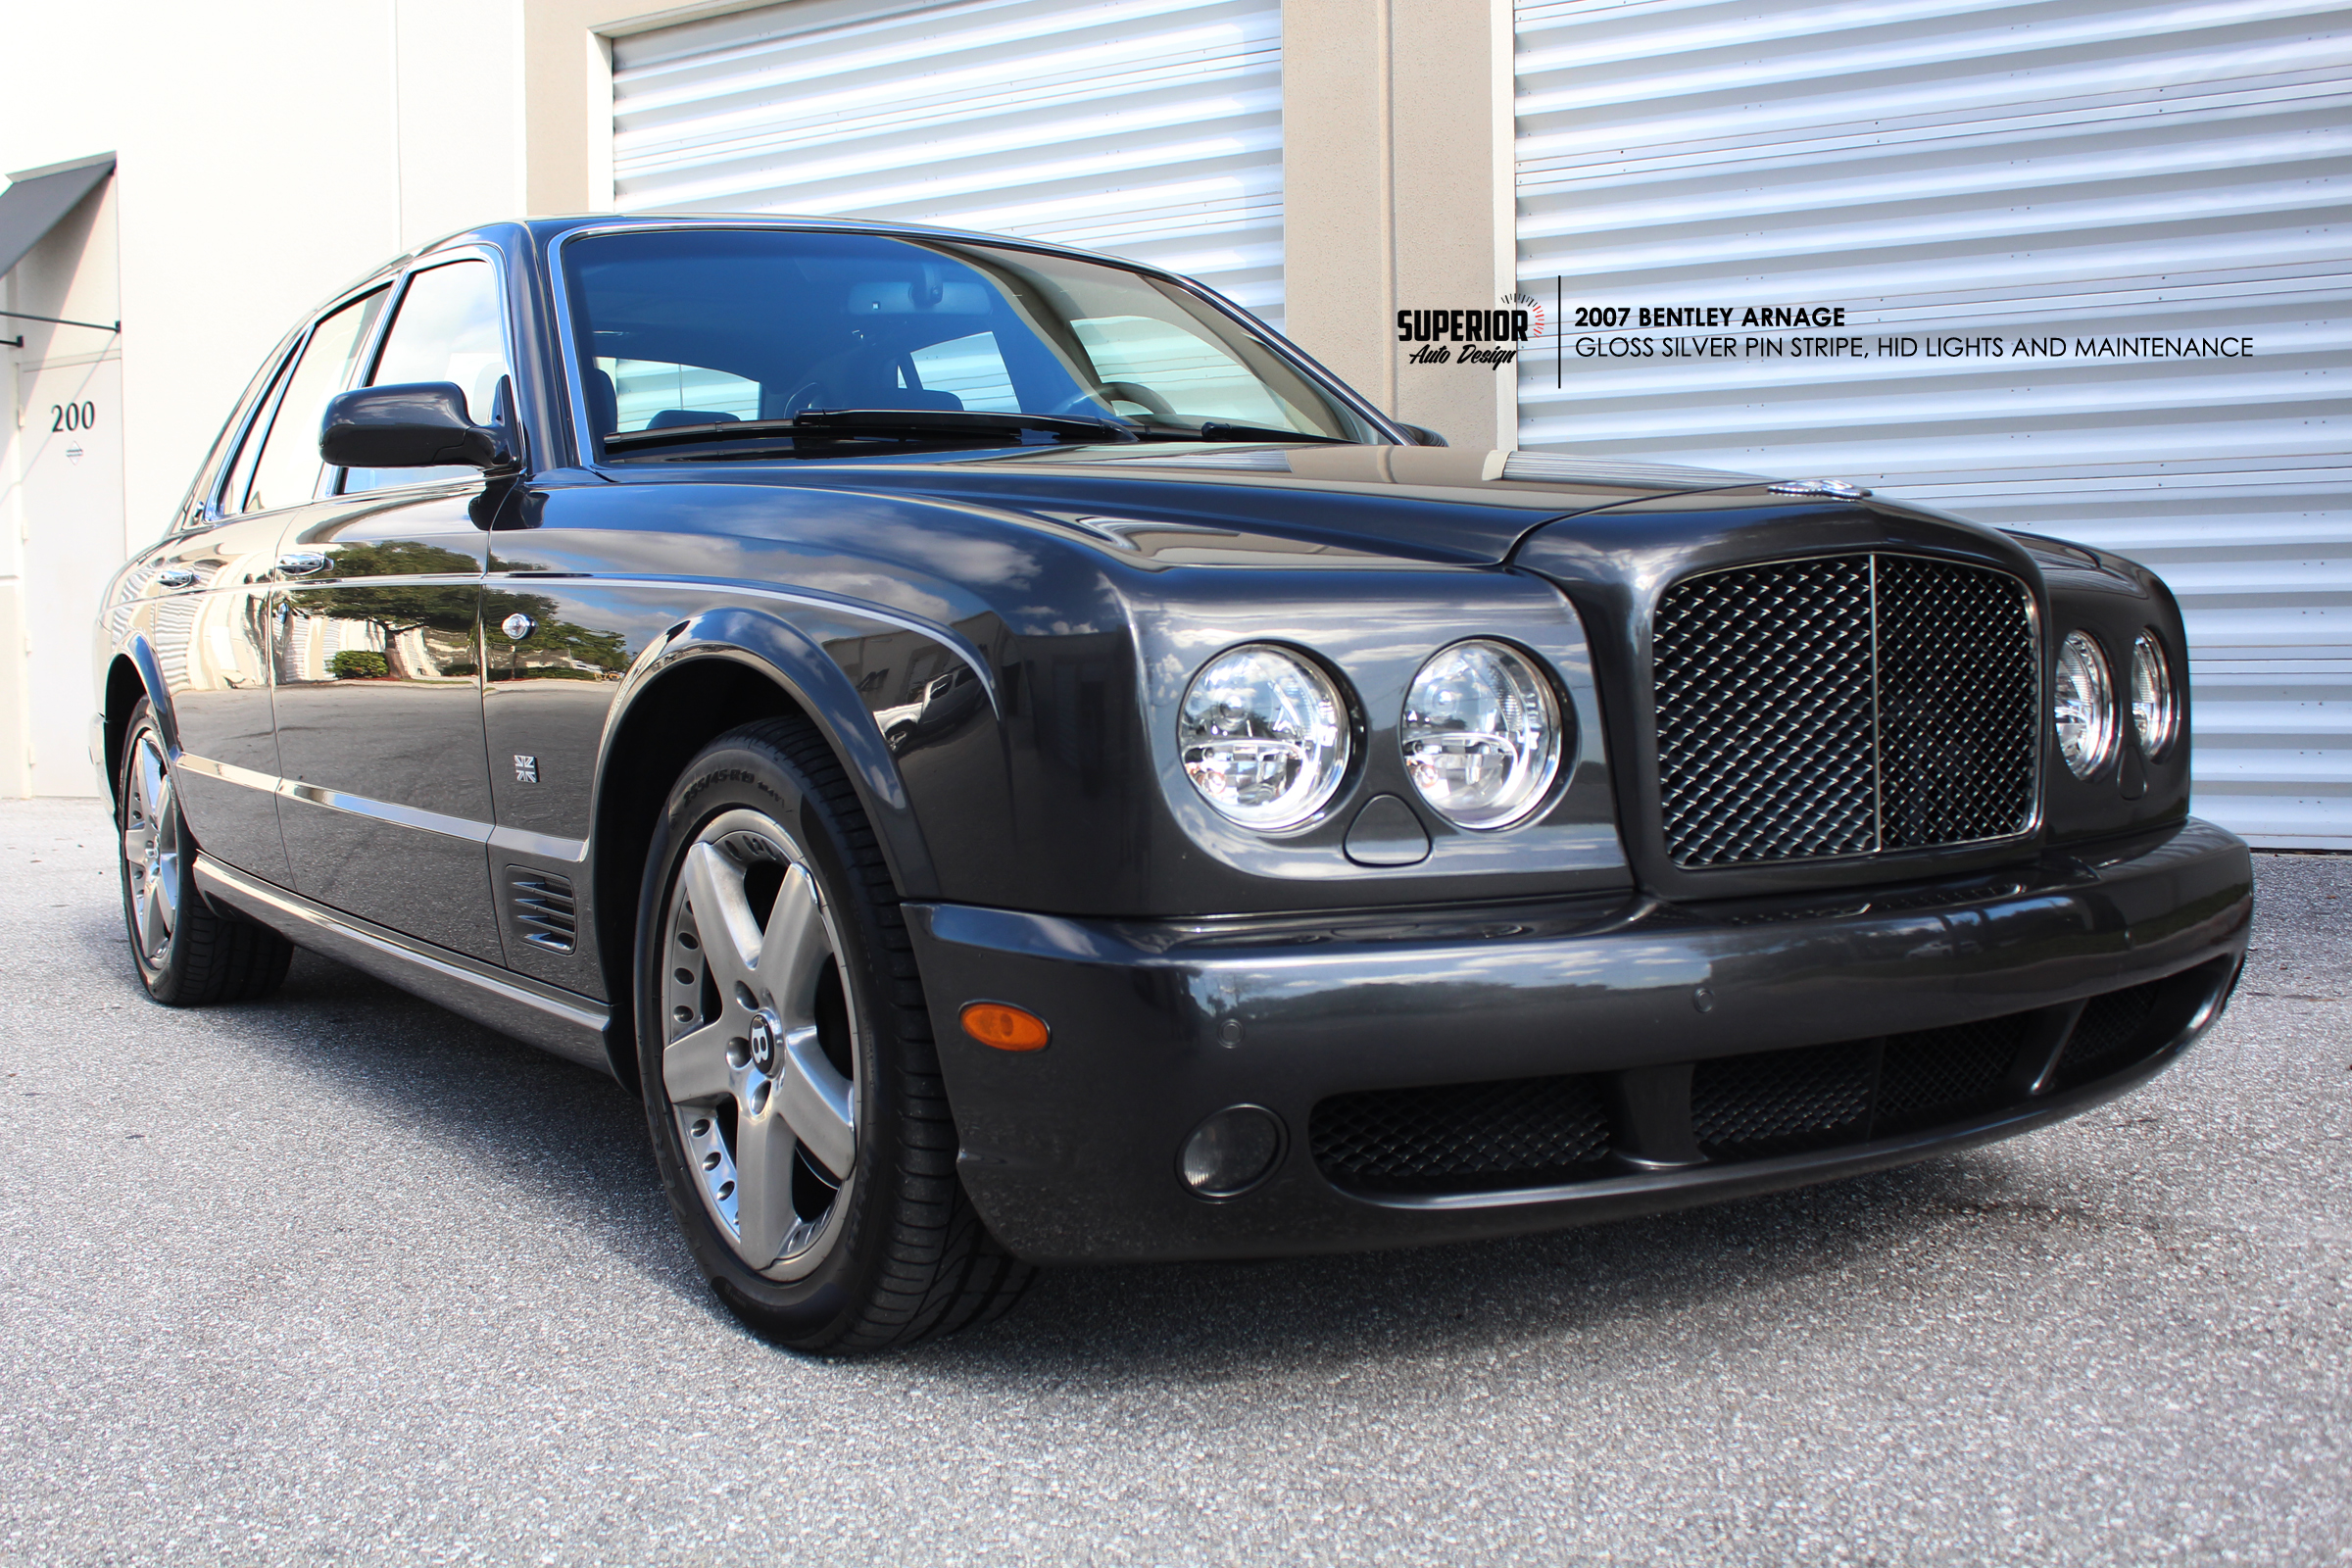 2007 bentley arnage maintenance repair and gloss silver side stripe bentley arnage car wrap superior auto design 4 vanachro Image collections